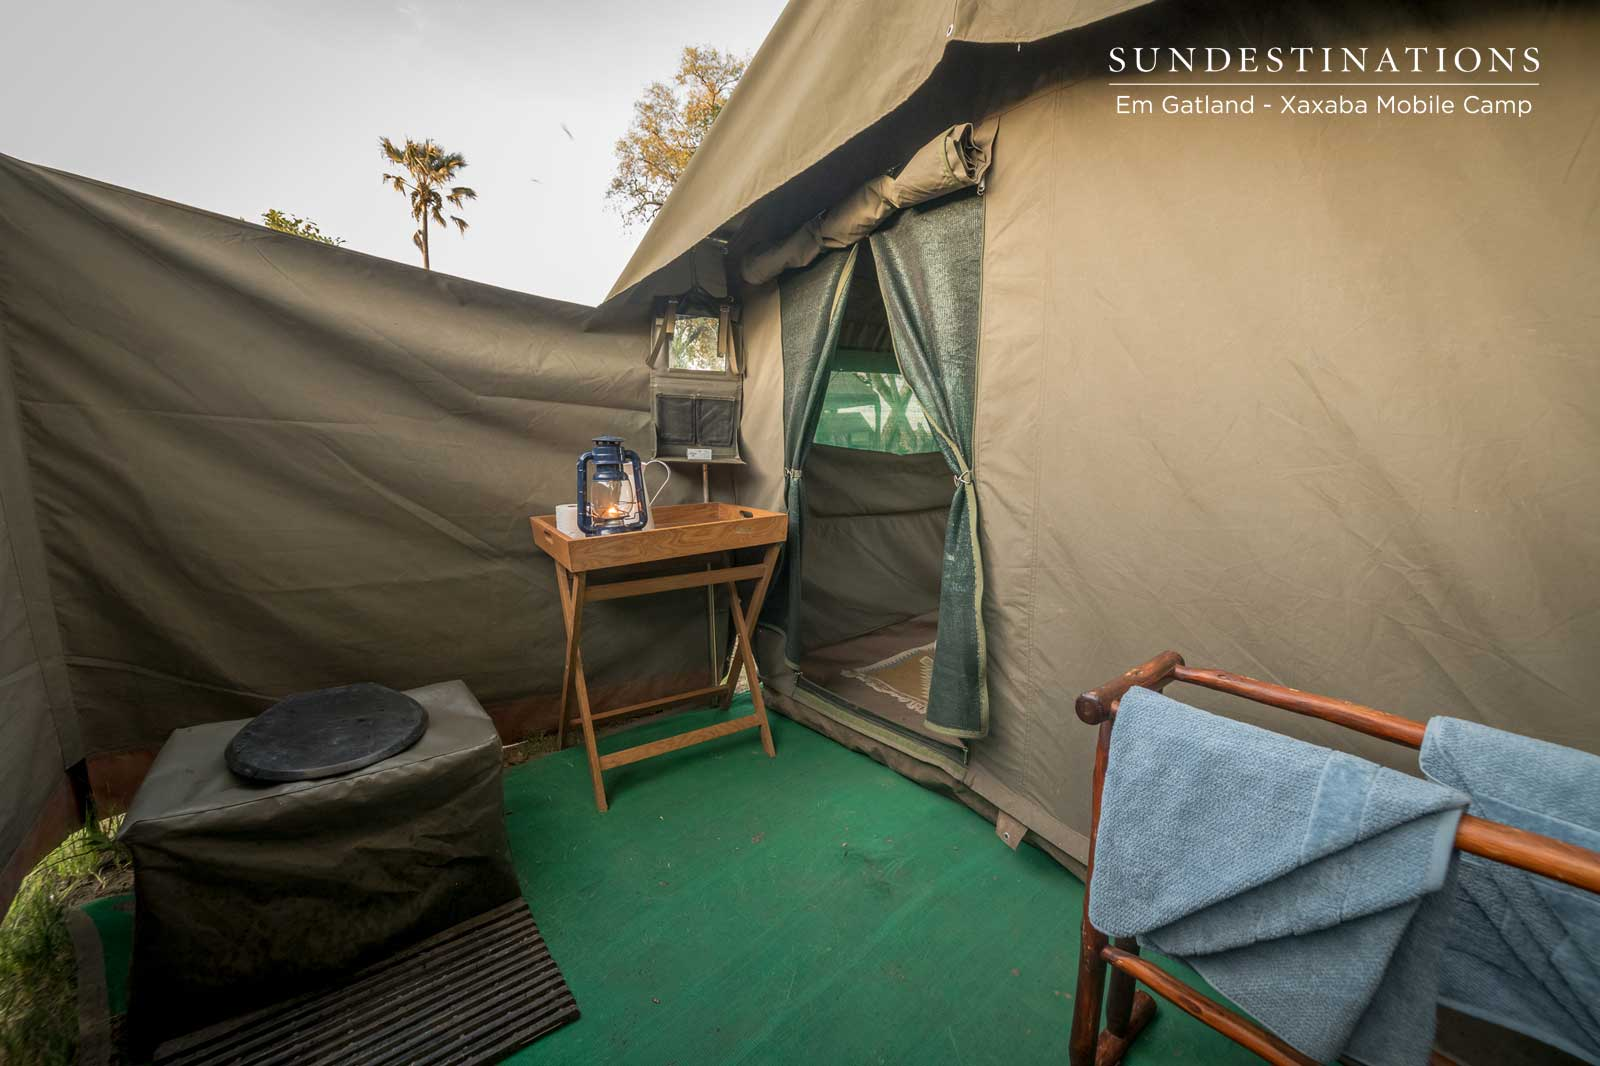 Xaxaba Mobile Camp Tents